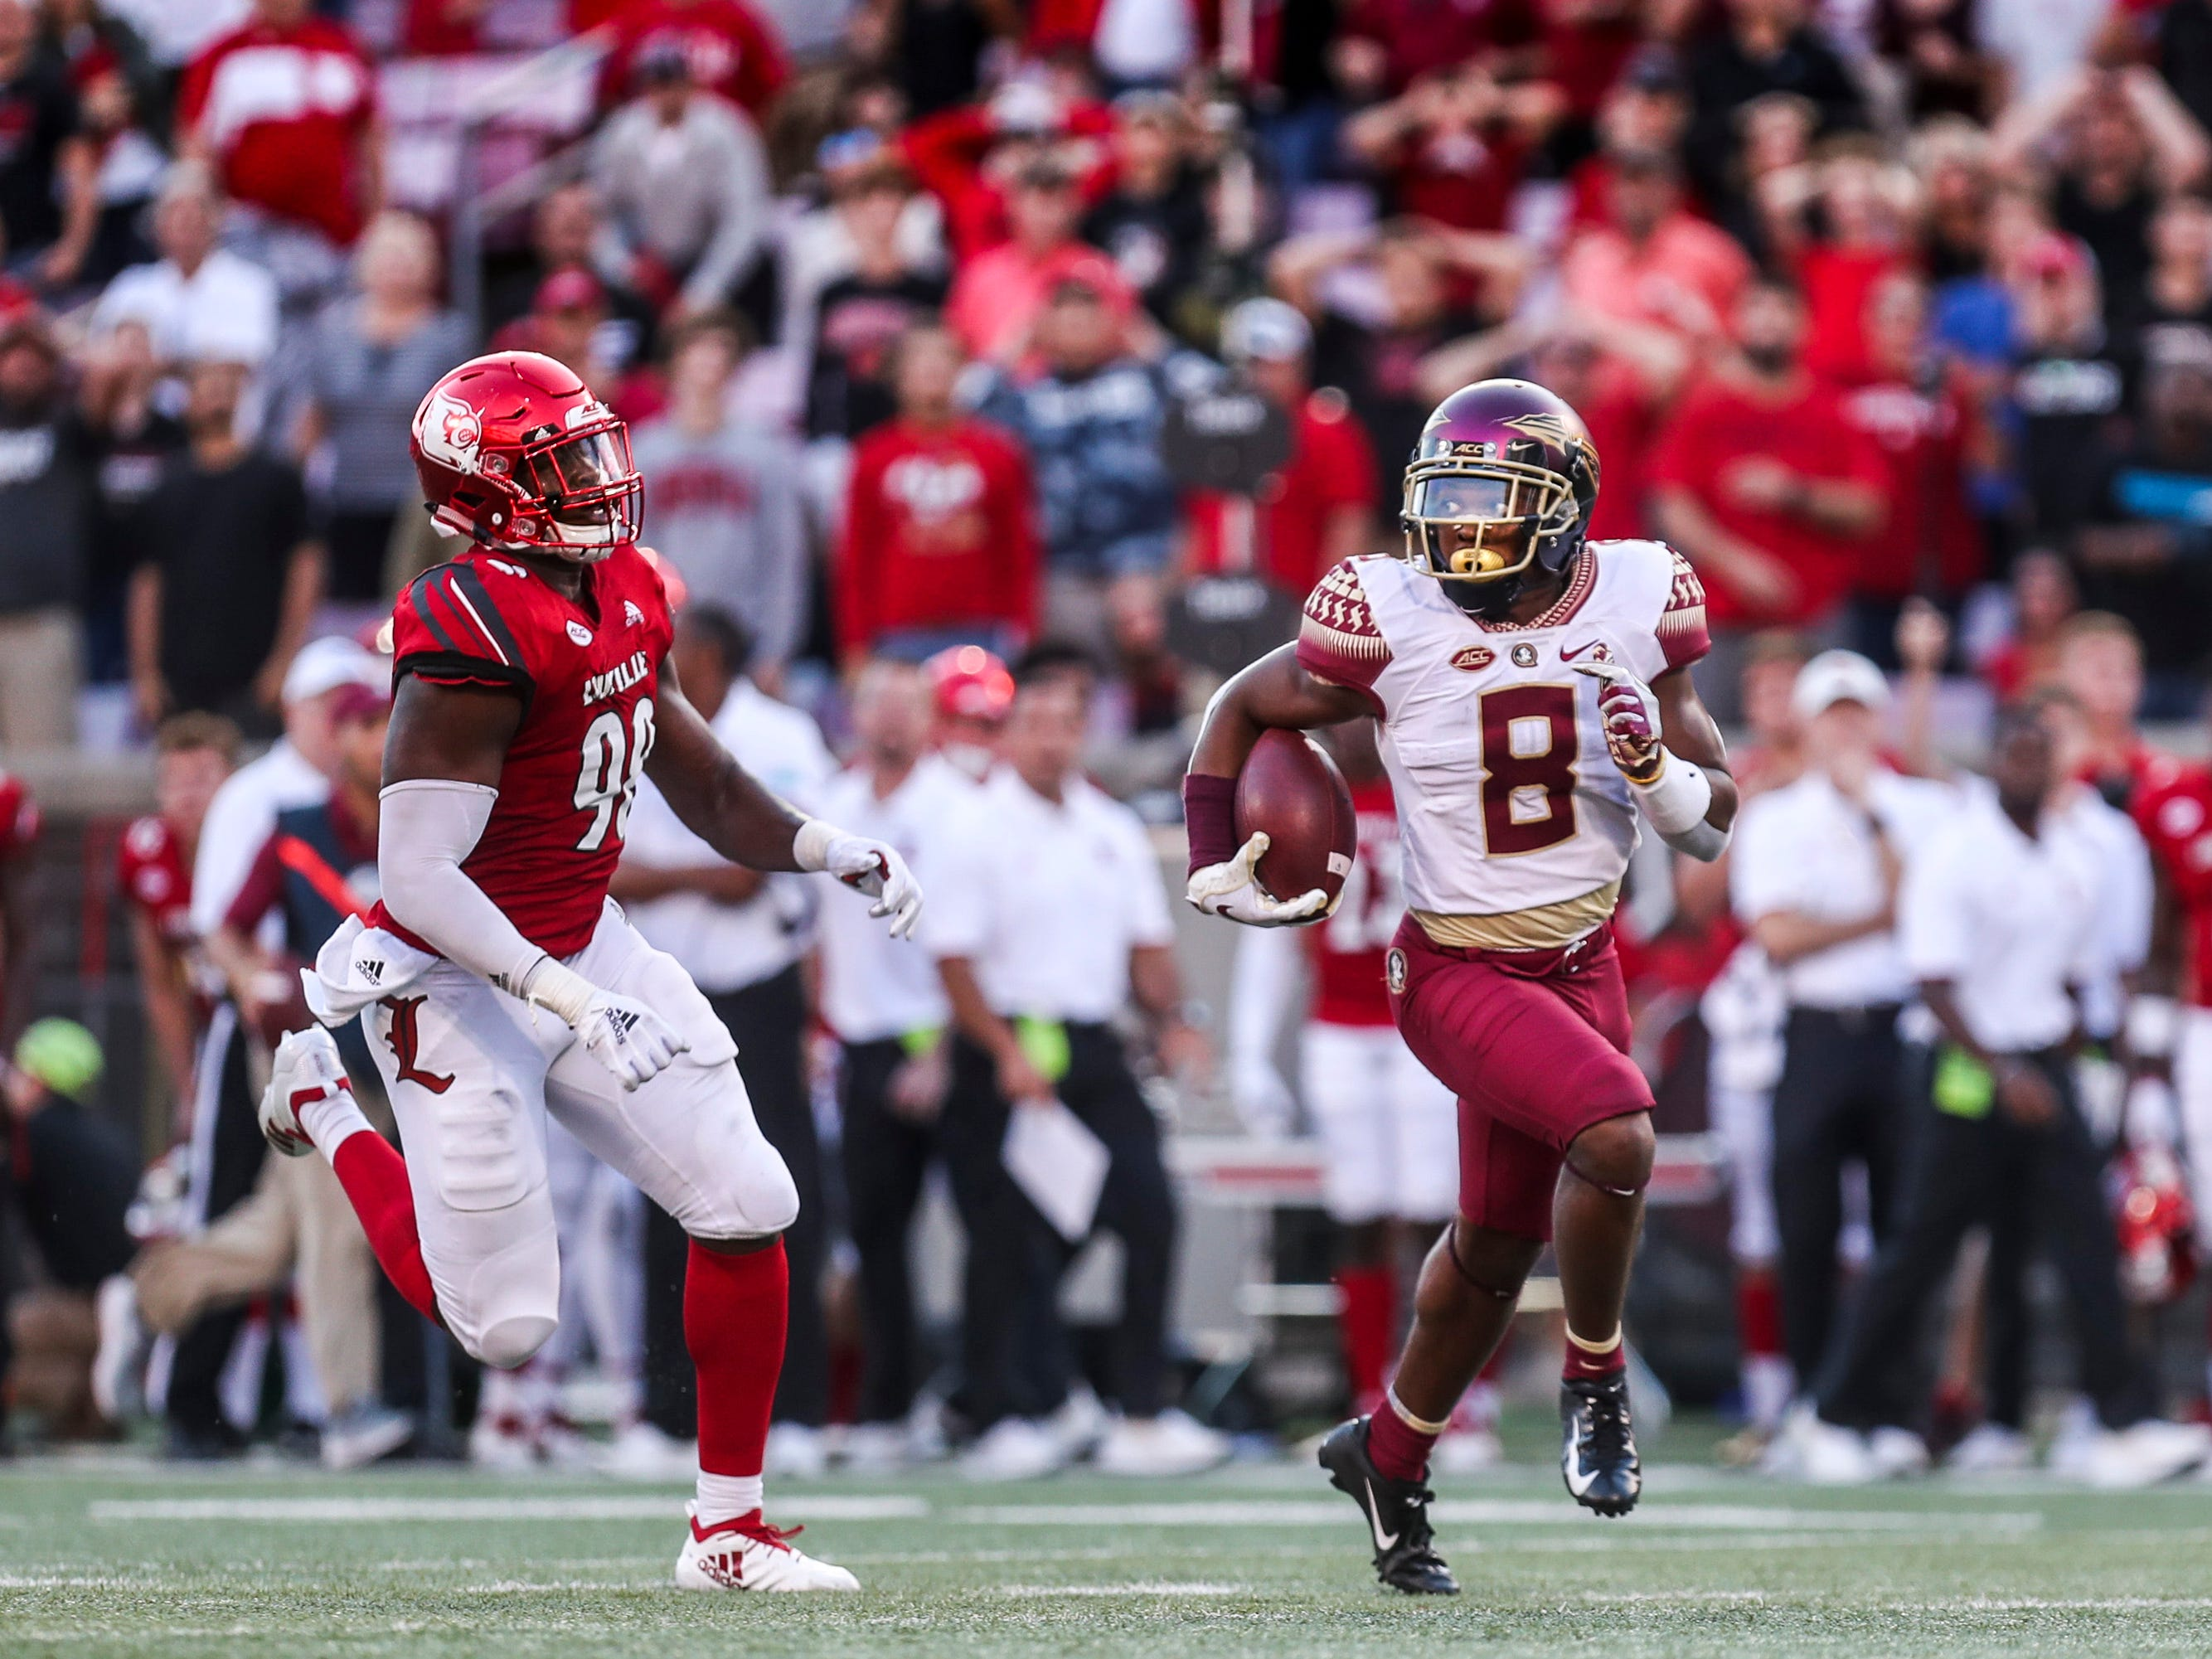 Florida State's Nyqwan Murray pulled a victory from Louisville after he ran 58 yards for a touchdown as the Seminoles came back to beat the Cardinals Saturday afternoon. Sept. 29, 2018